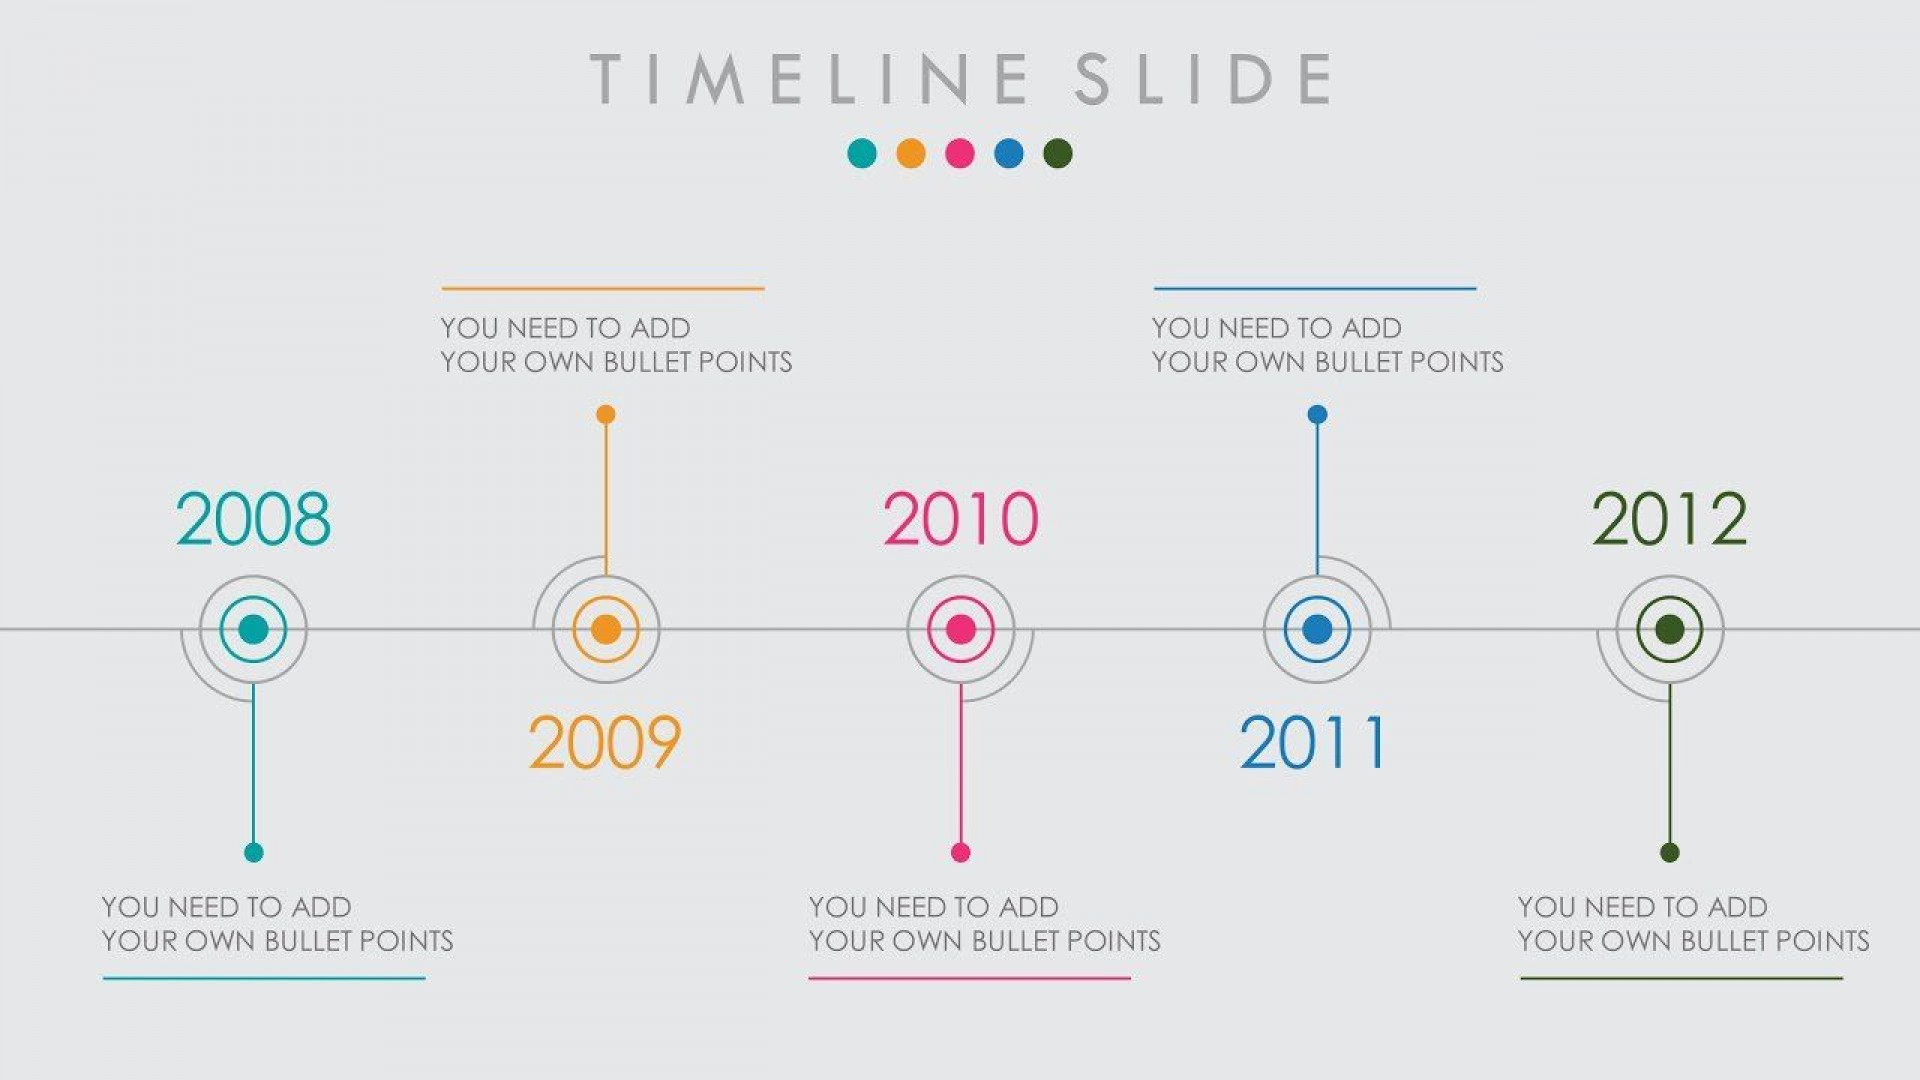 006 Unforgettable Timeline Graph Template For Powerpoint Presentation High Resolution 1920